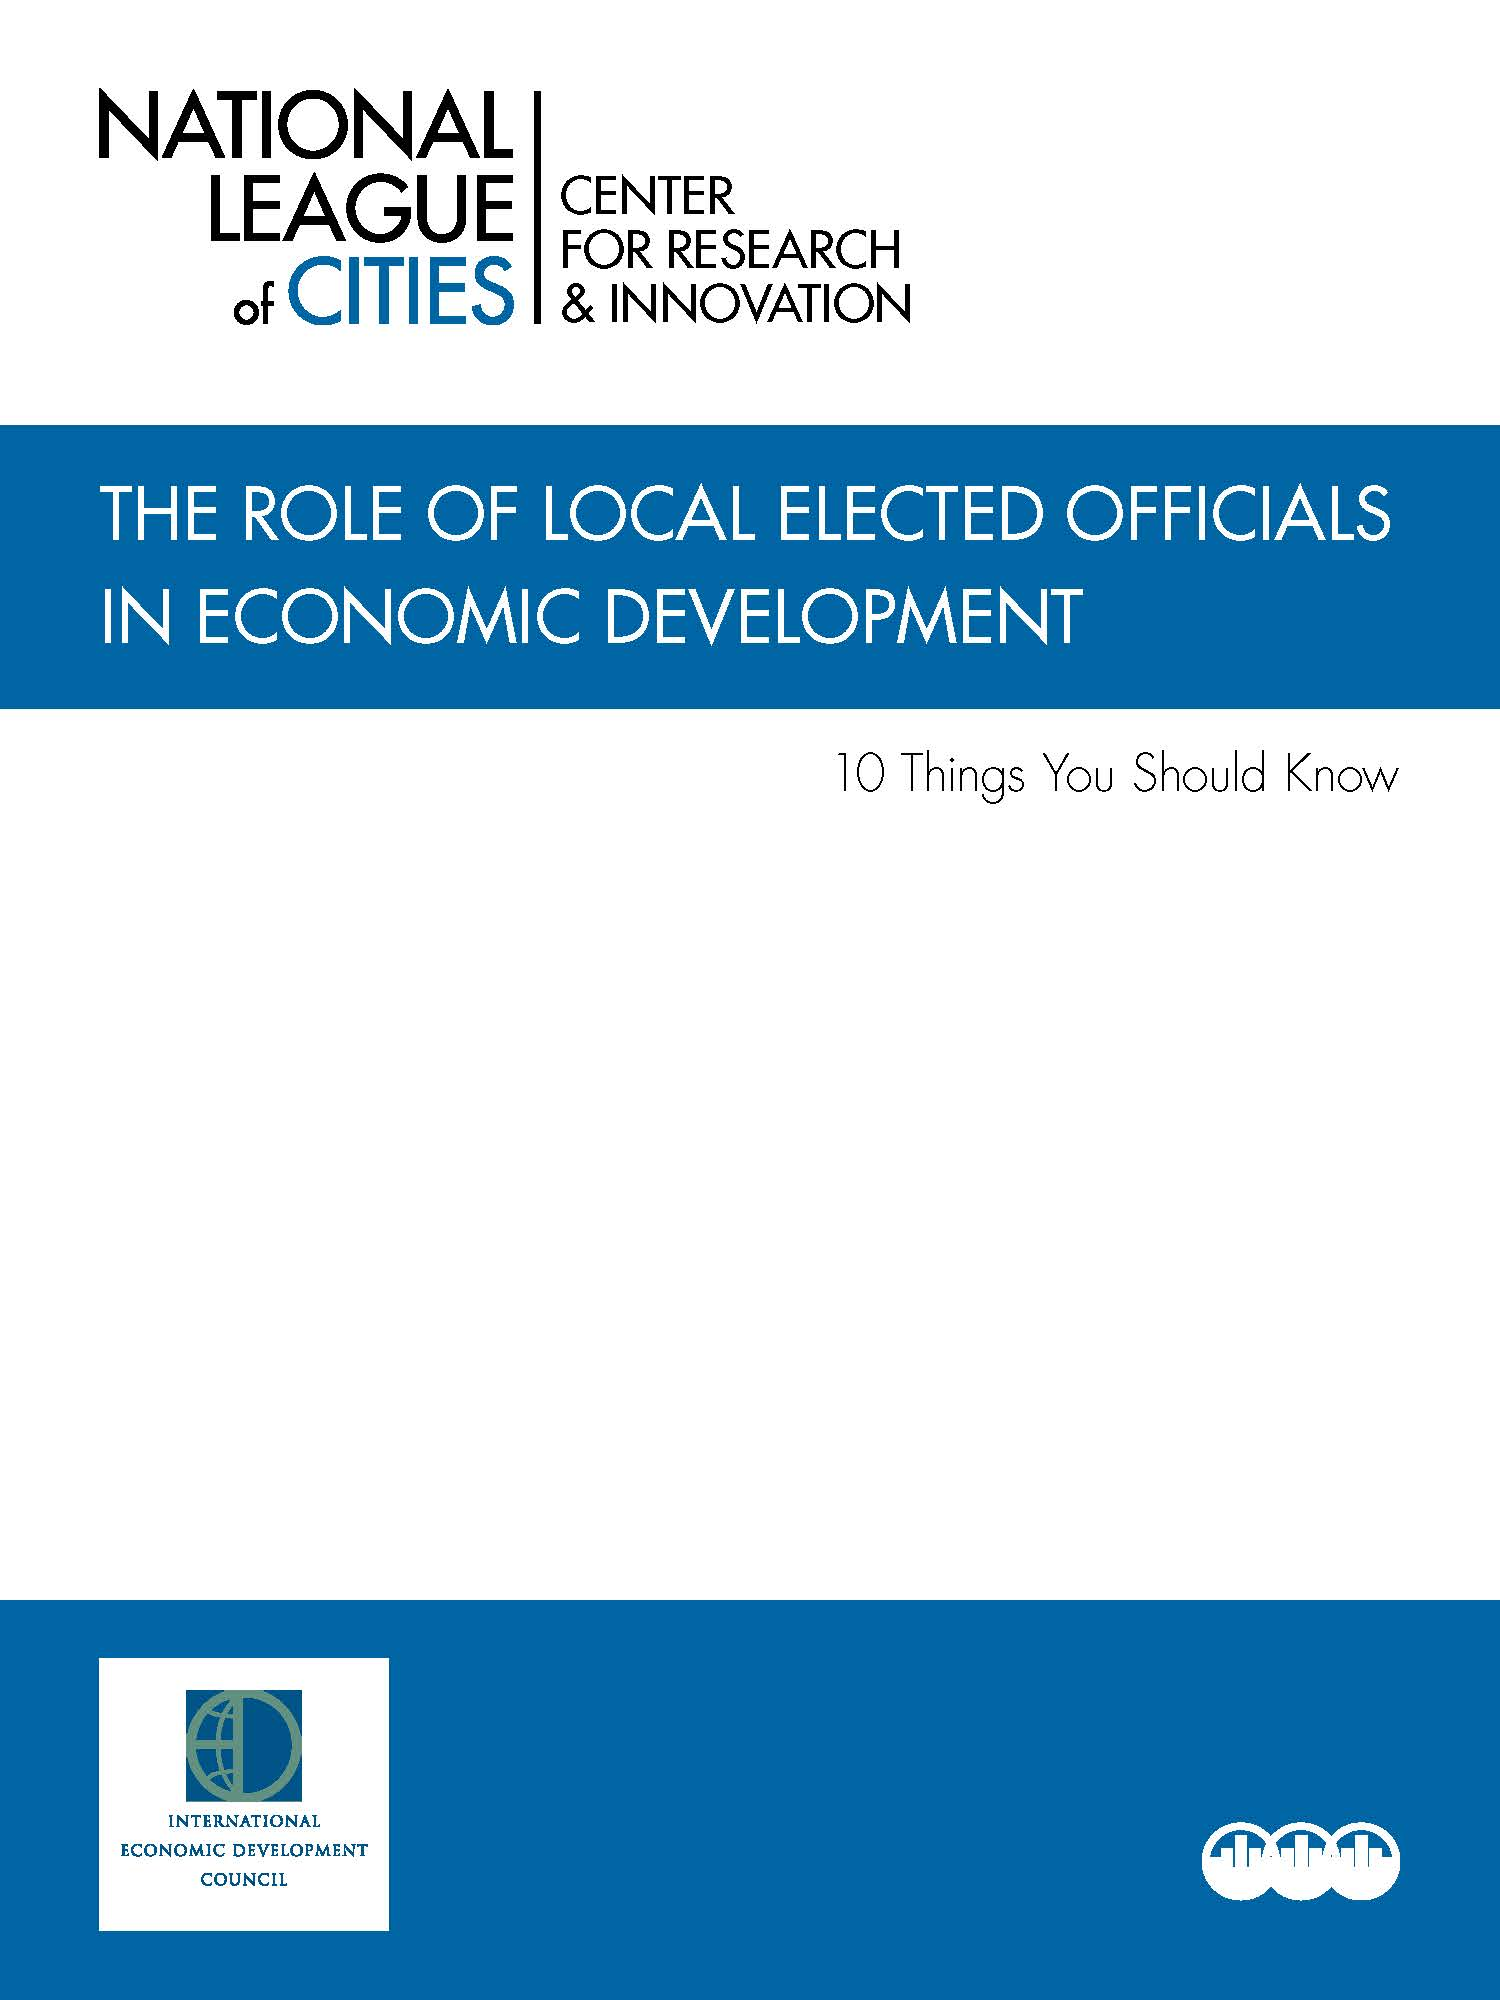 The Role of Local Elected Officials in Economic Development